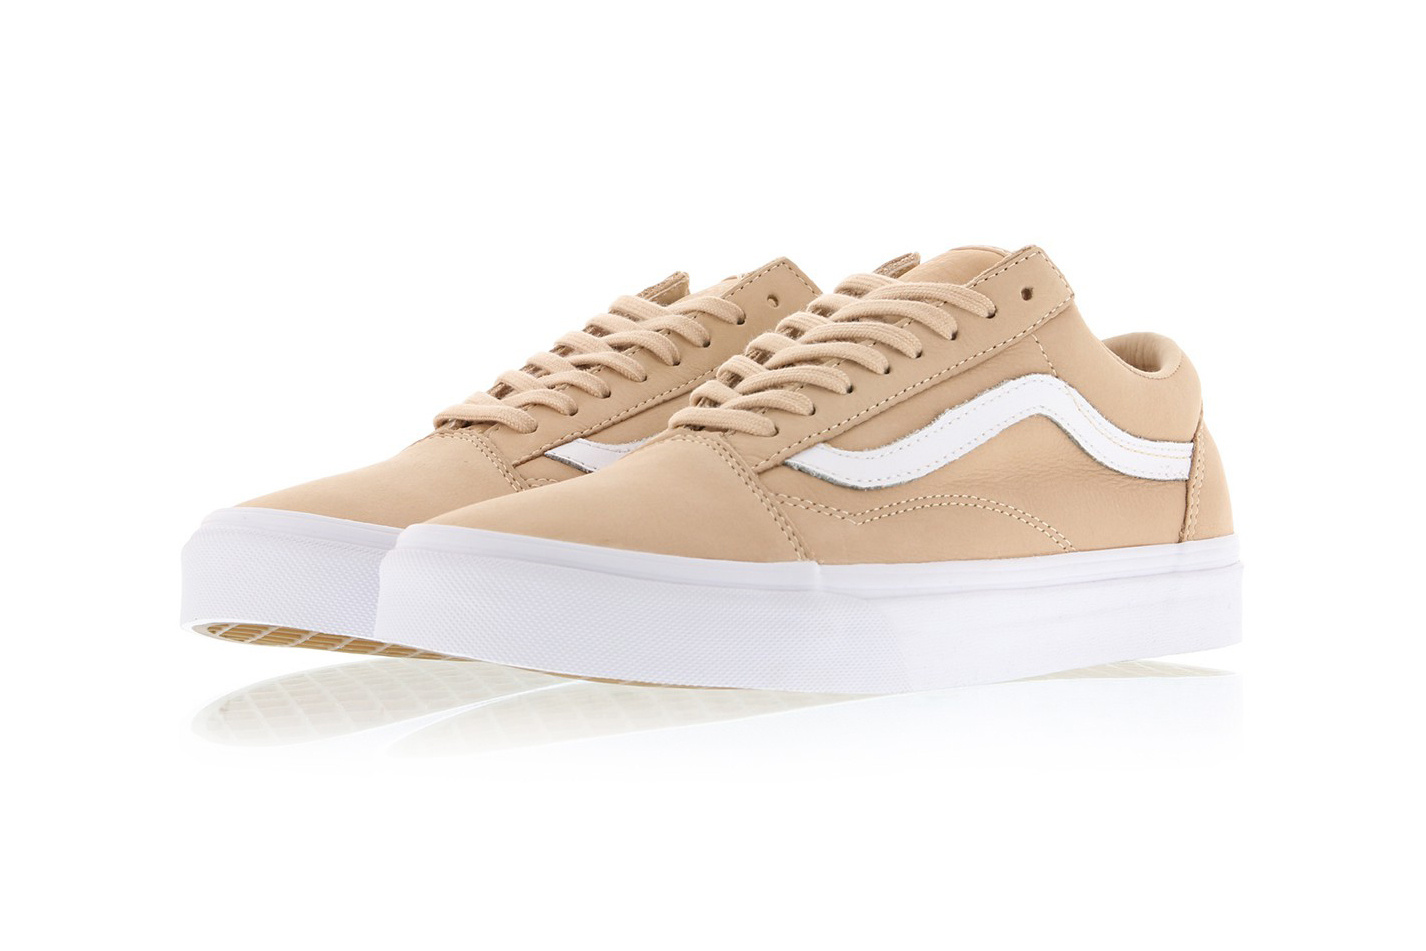 "57b7d4f9b5 Take a look at some additional images below and cop the Old Skool in  ""Toasted Almond"" at select Vans stockists now."